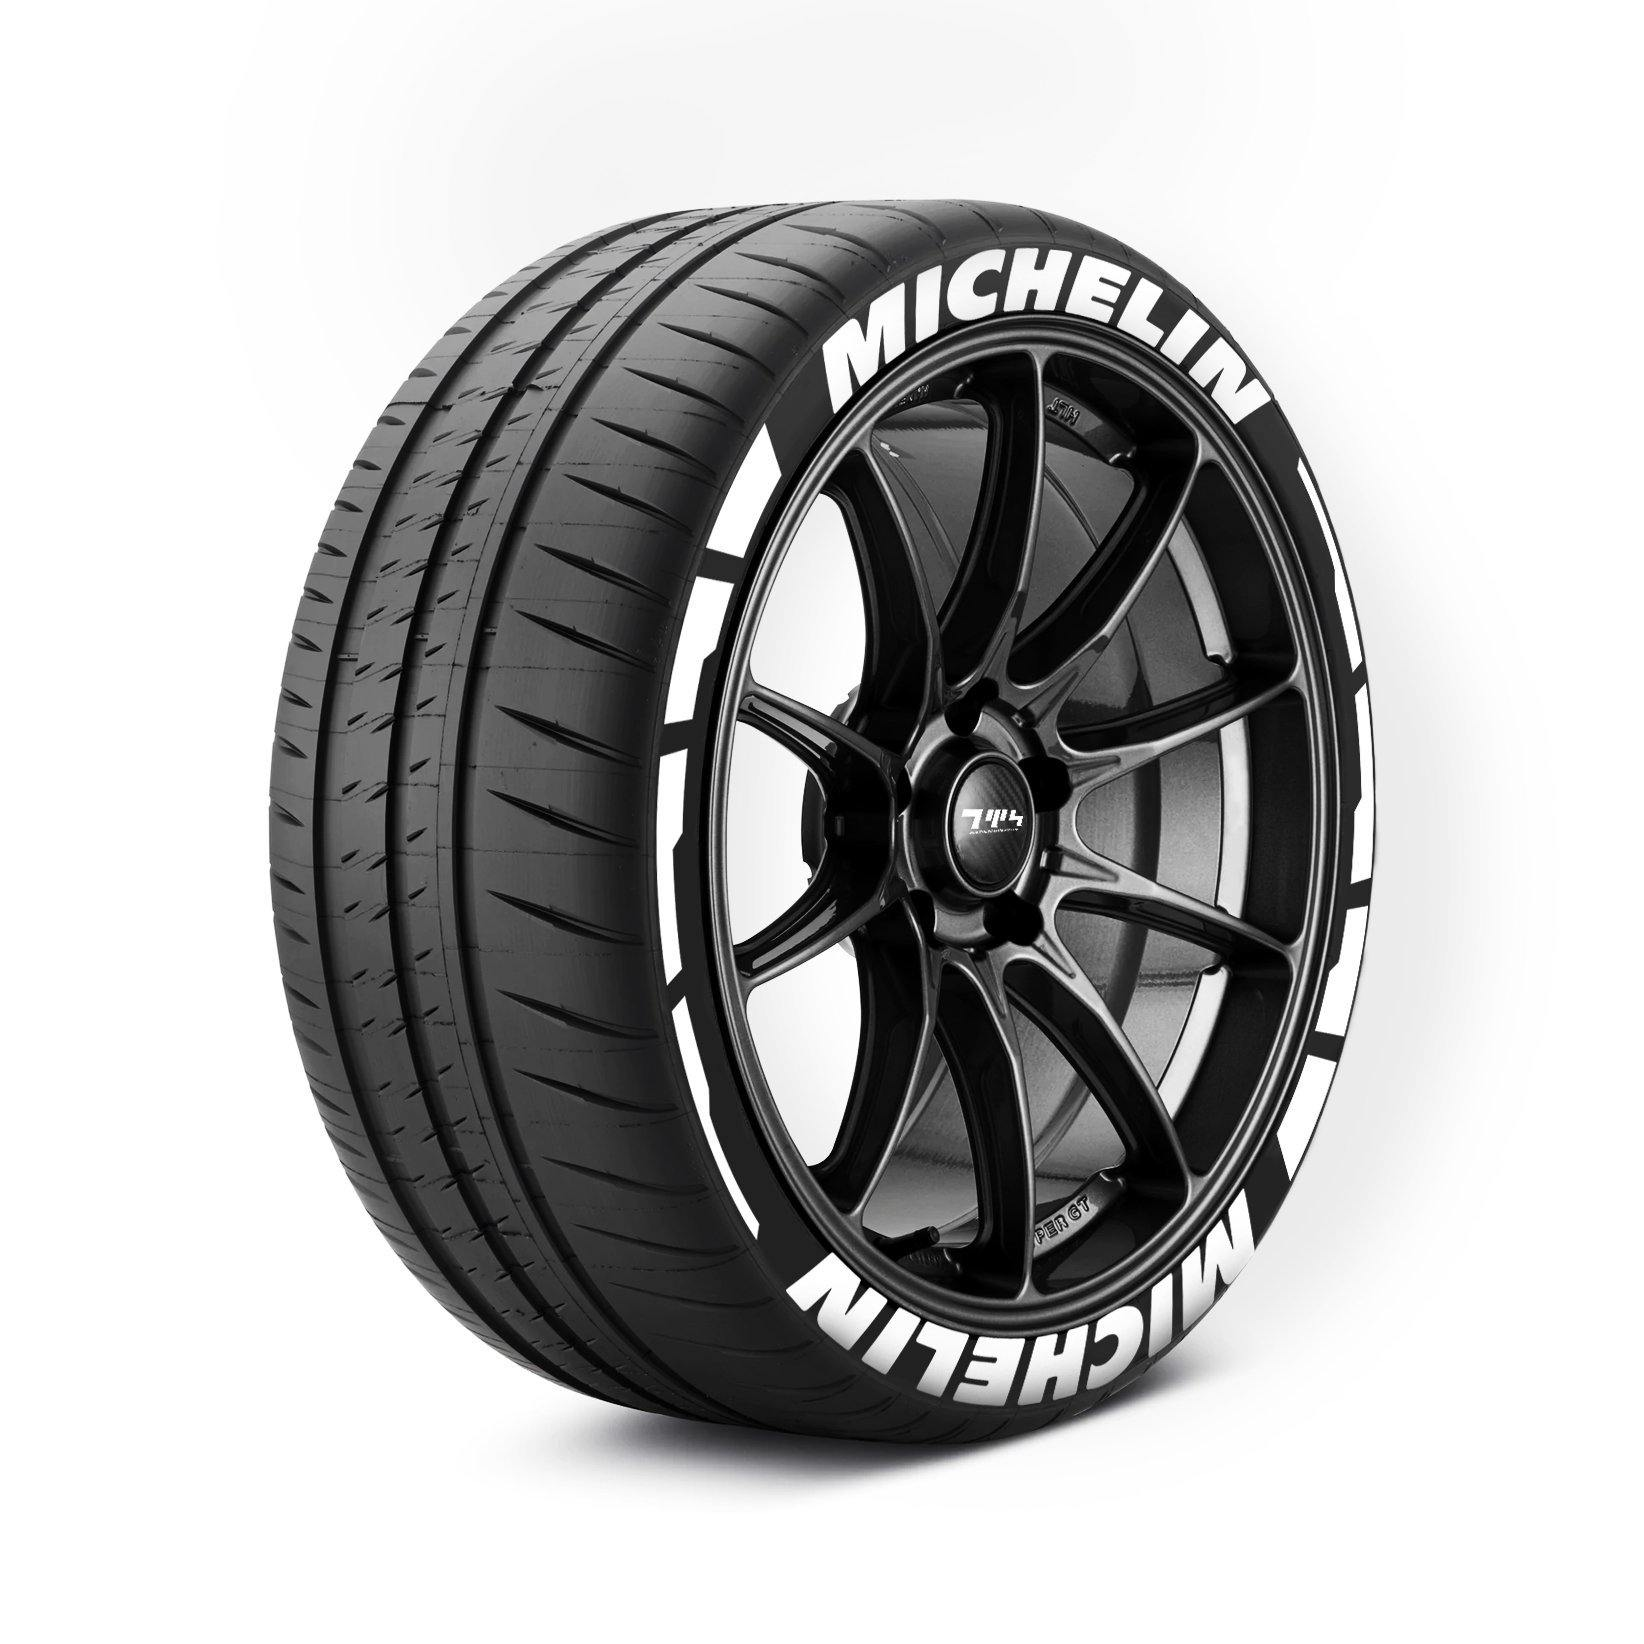 MICHELIN Tyre Stickers with flares - Tyre Wall Stickers